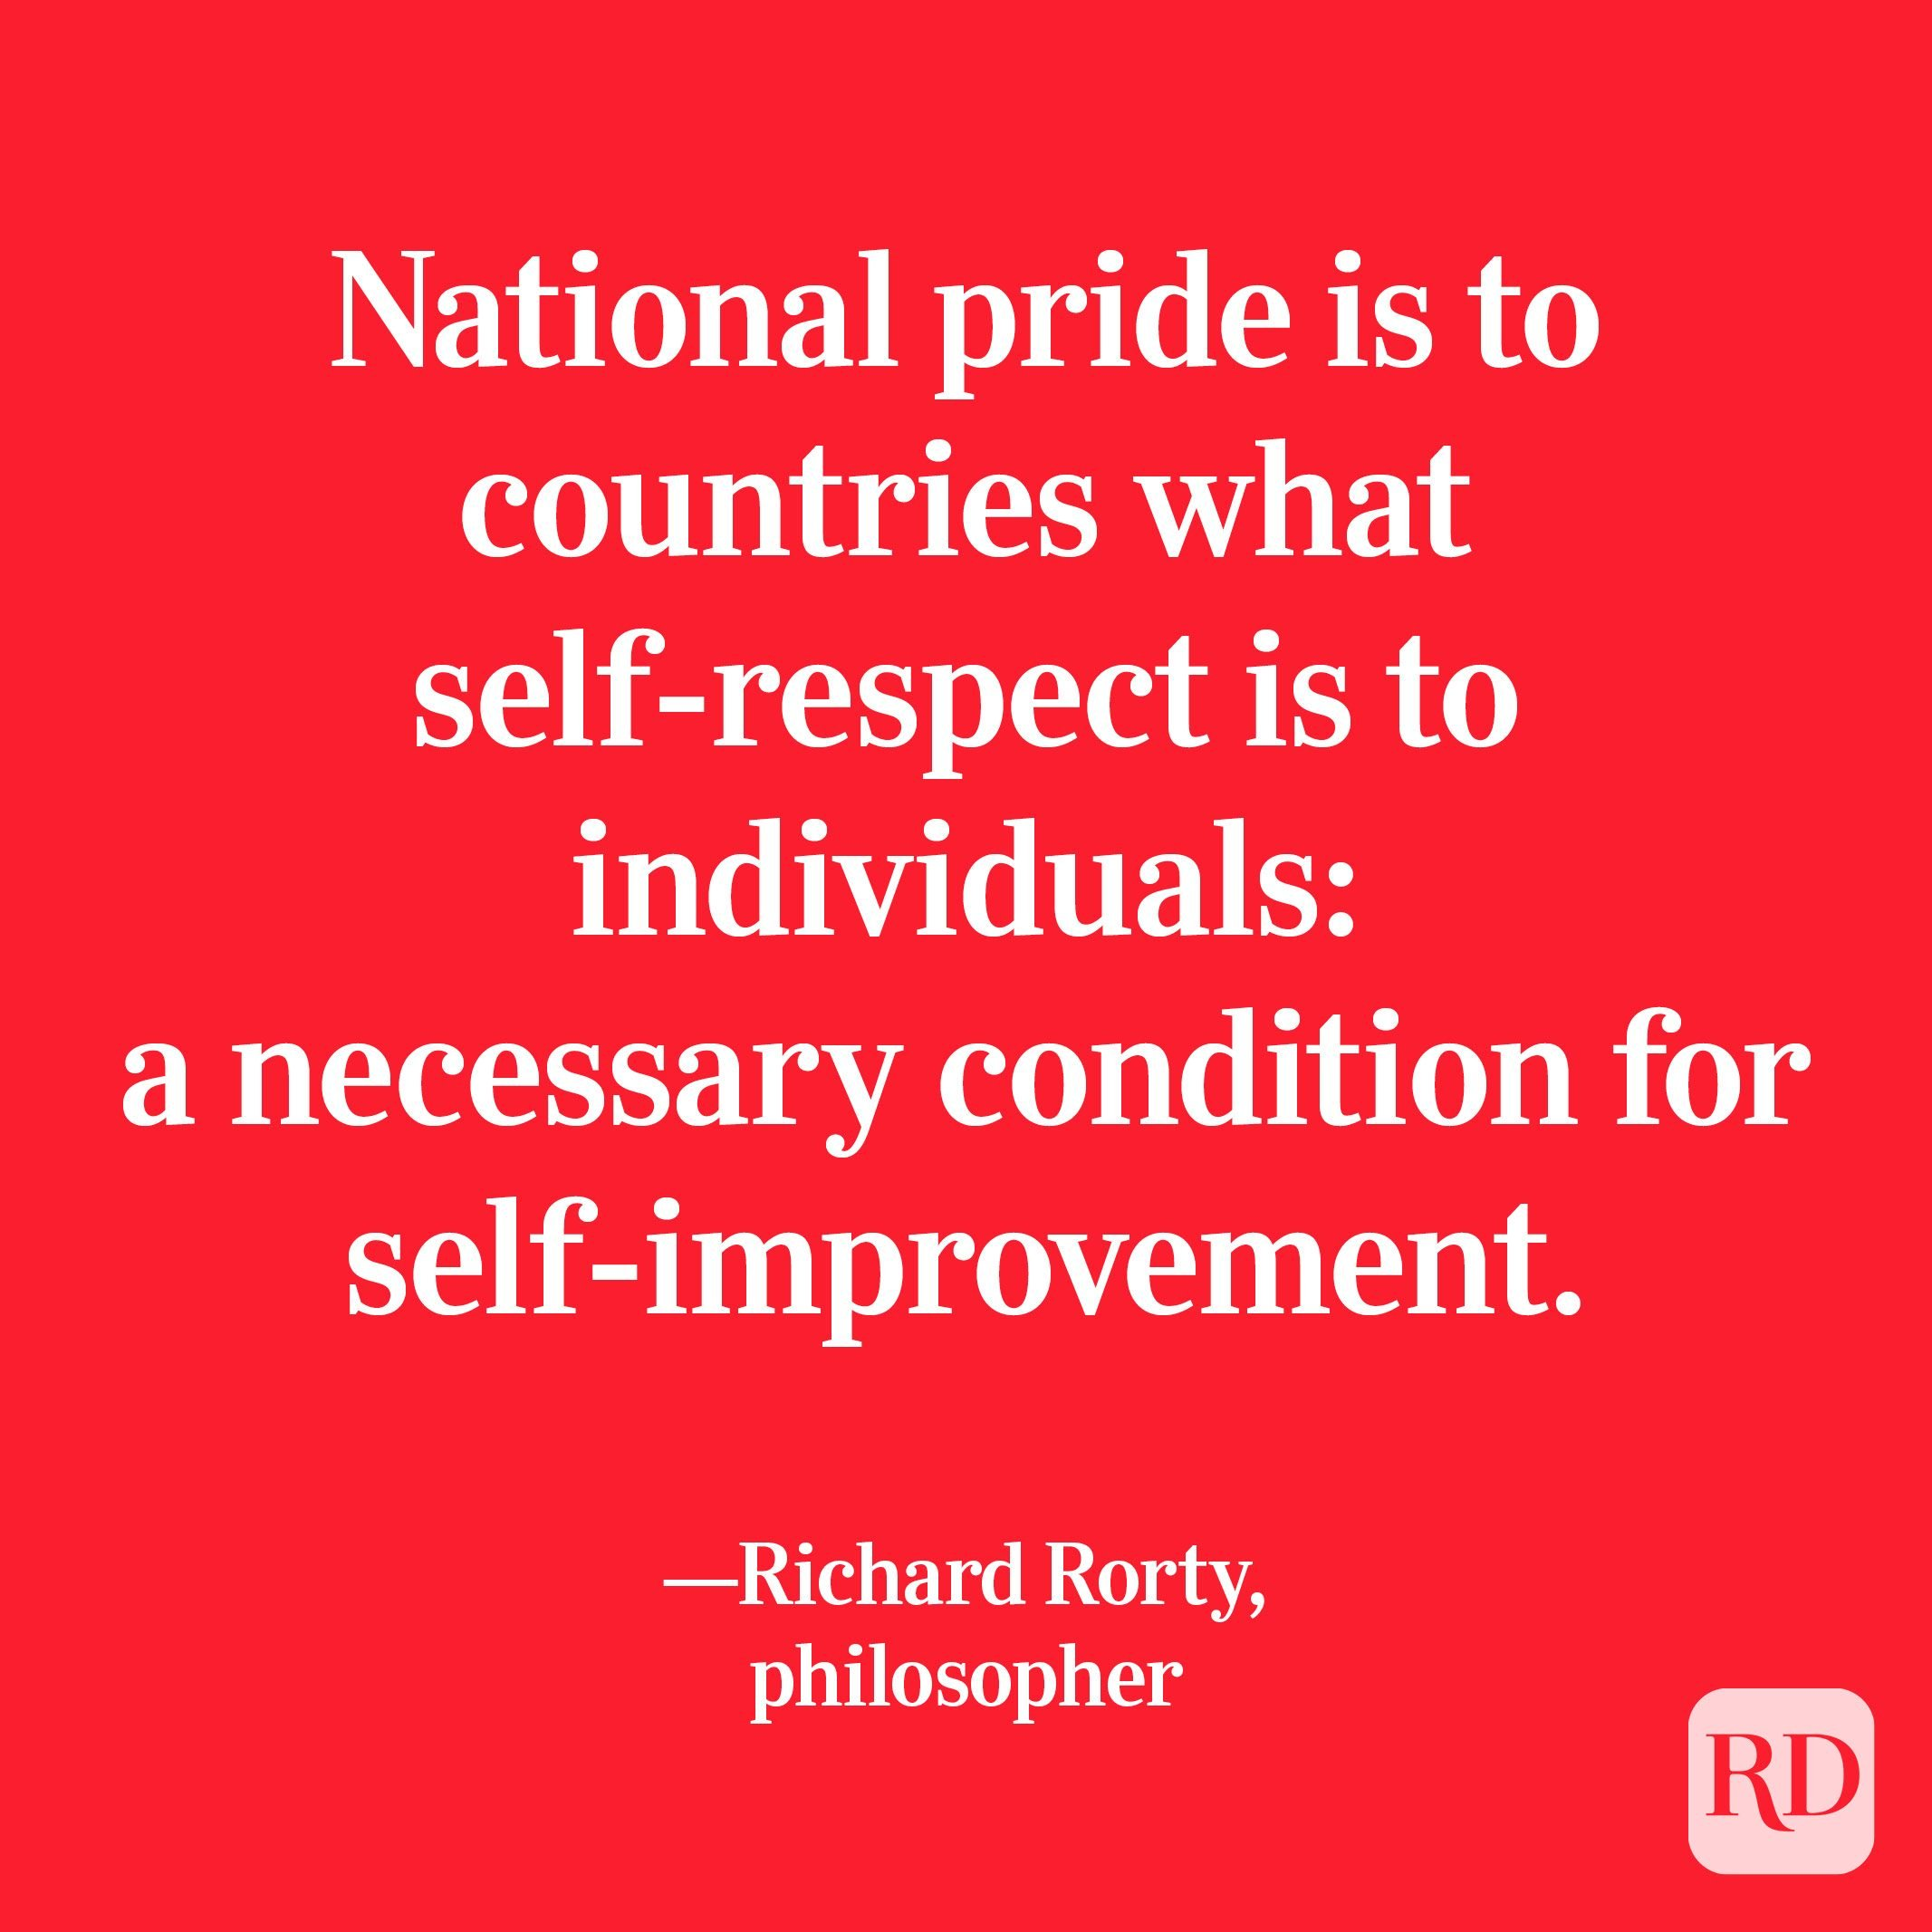 """""""National pride is to countries what self-respect is to individuals: a necessary condition for self-improvement."""" —Richard Rorty, philosopher"""